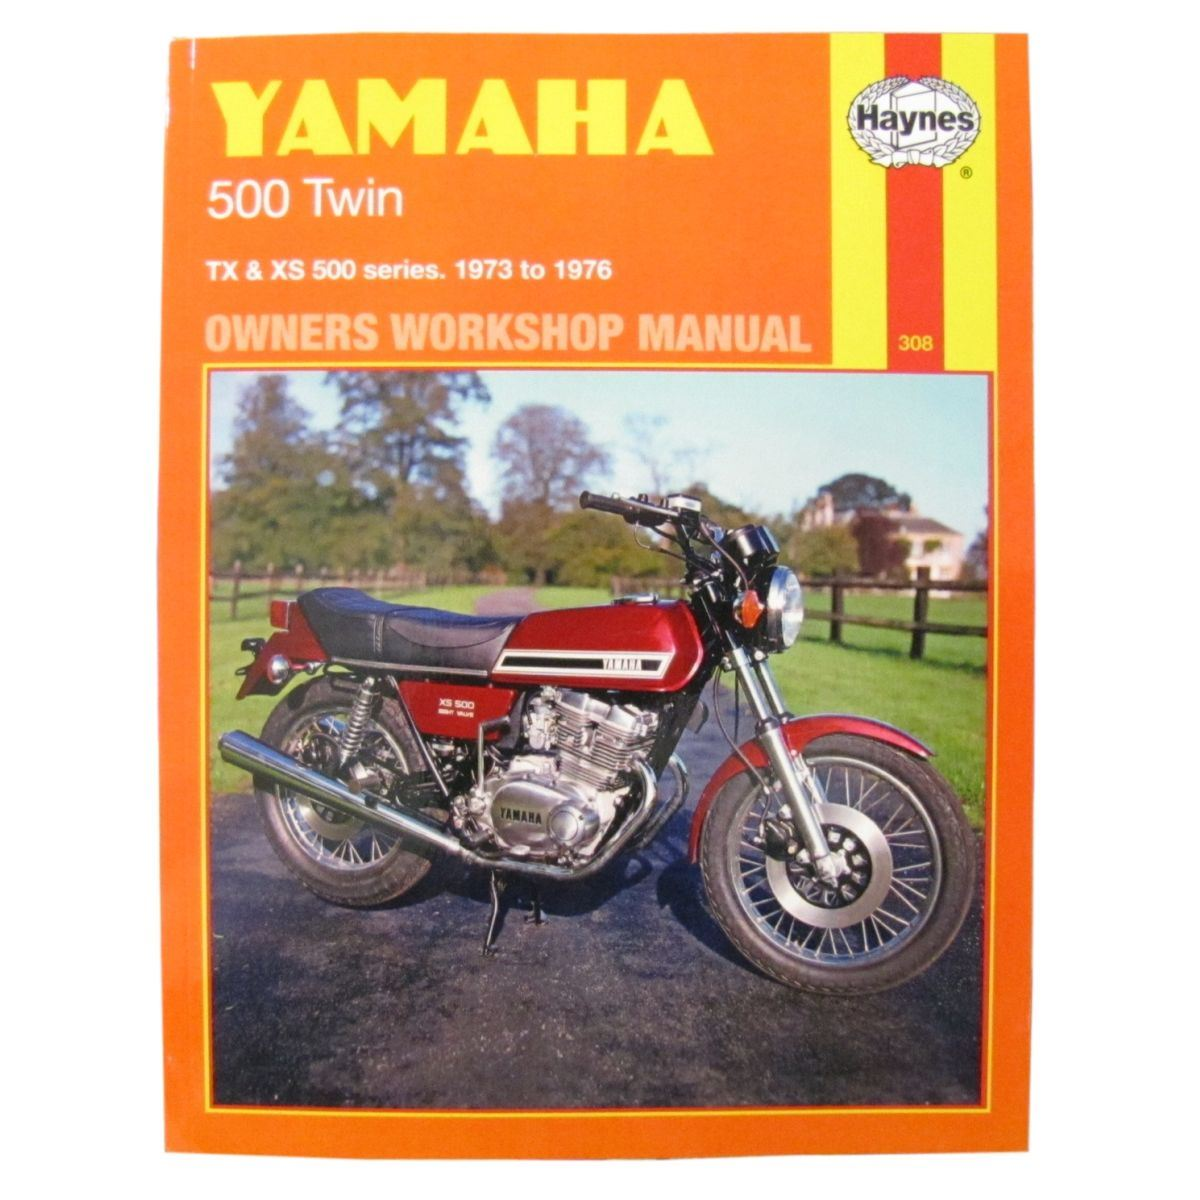 Manual Haynes For 1973 Yamaha Tx 500 Ebay Yb100 Wiring Diagram Image Is Loading